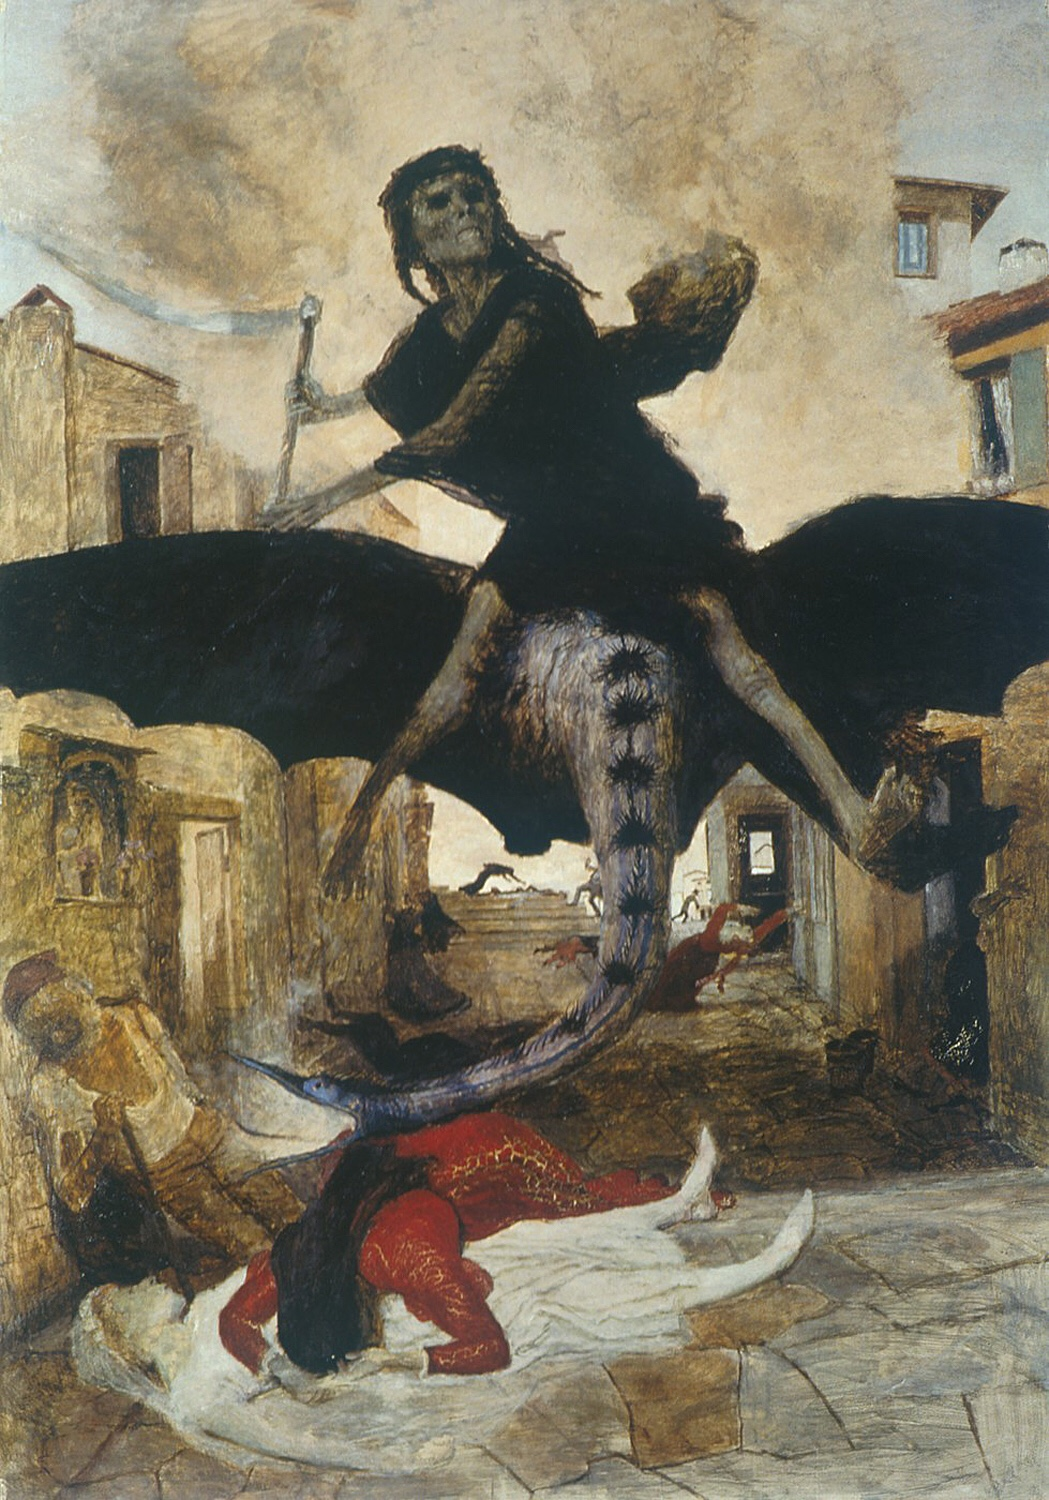 The Plague by    Arnold Böcklin   . 1898. This artwork is in the public domain. {{PD}}